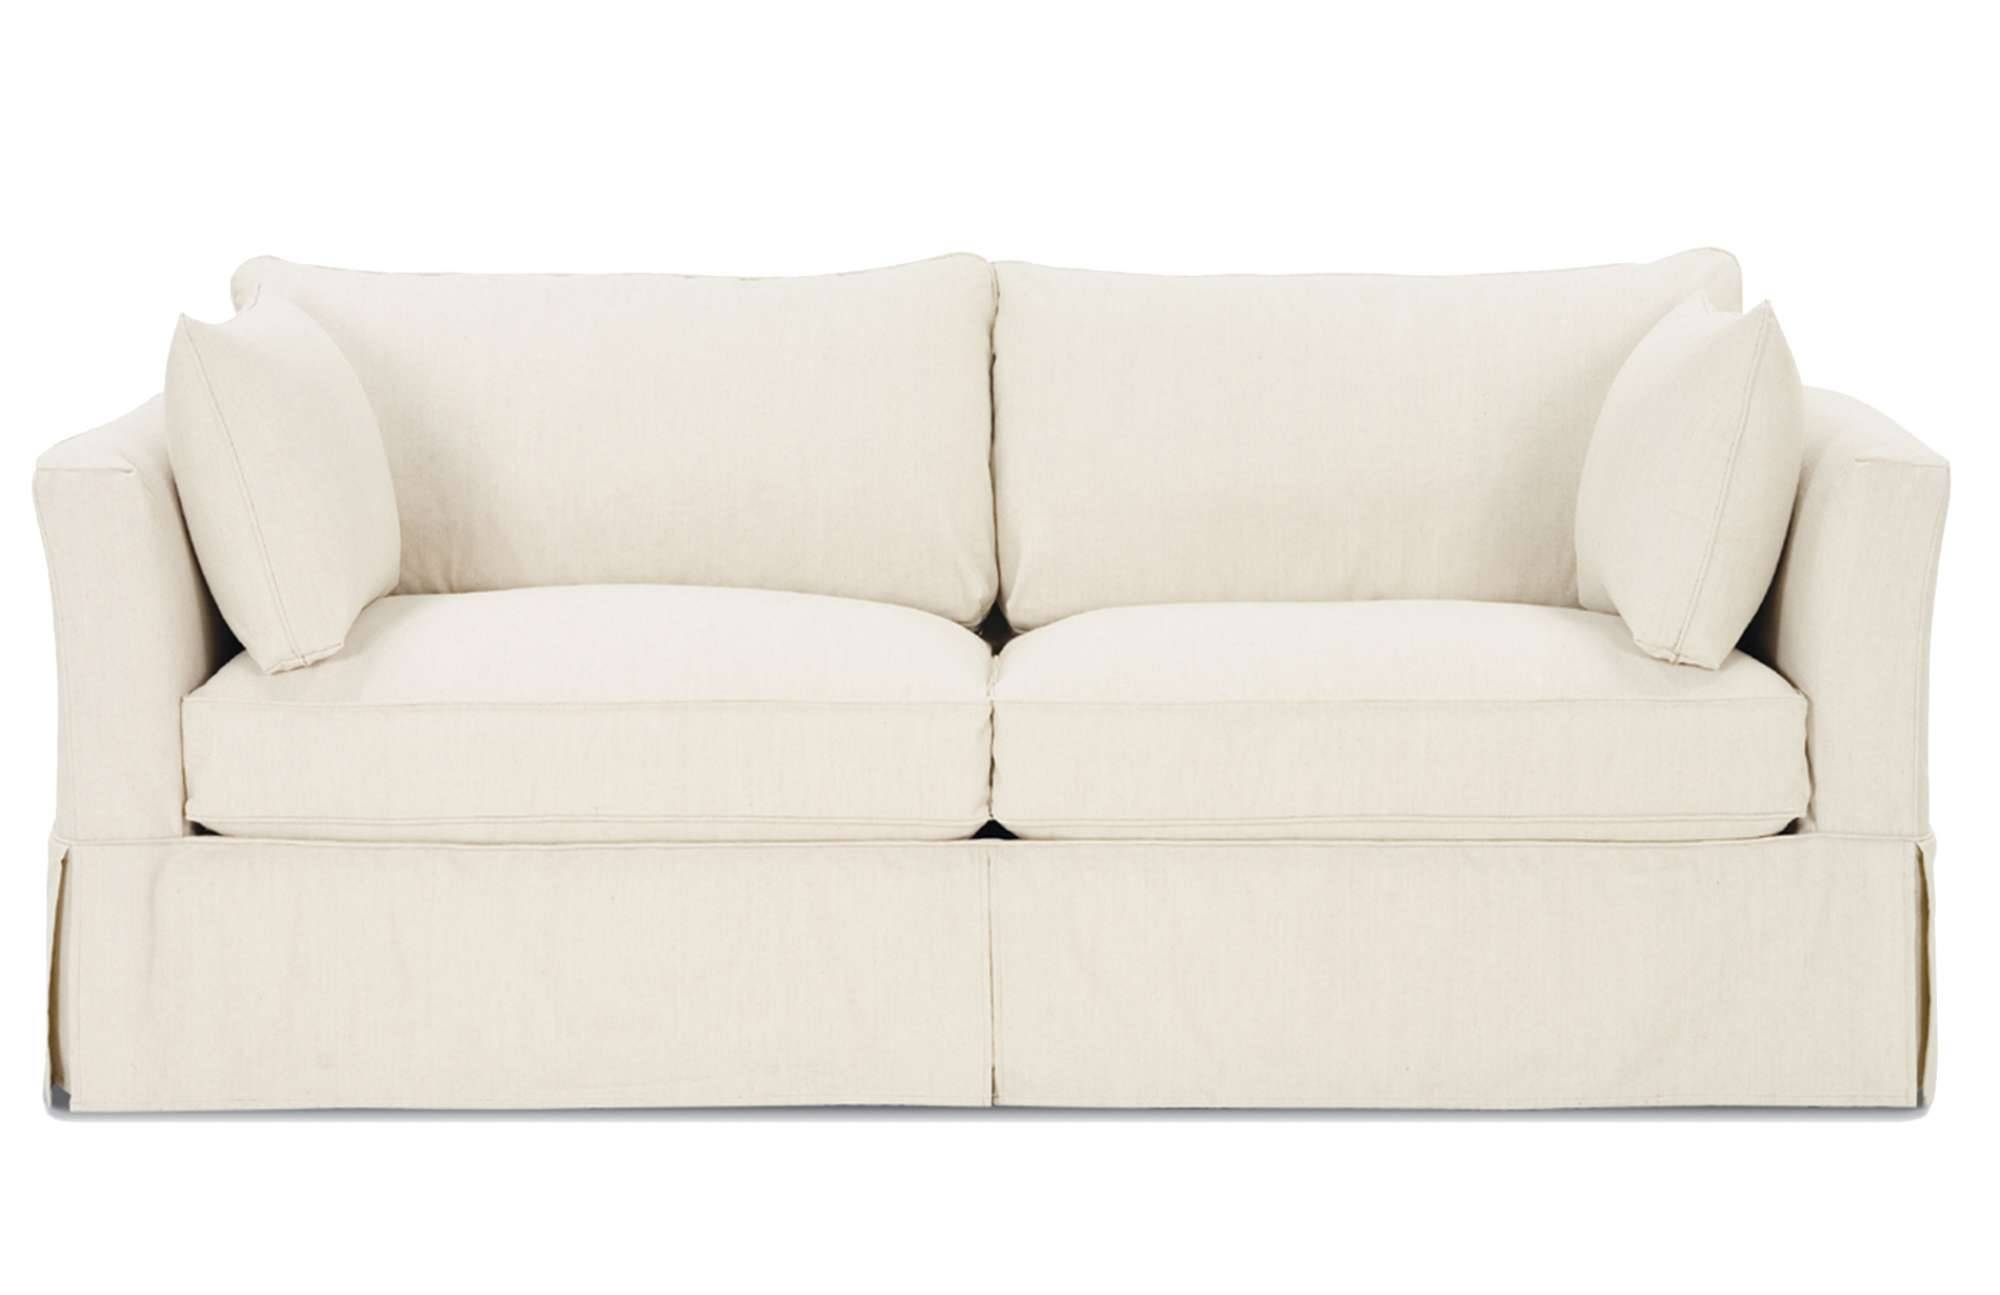 Furniture: Slipcovered Loveseat | Loveseat Slipcovers Kohls for Slip Covers For Love Seats (Image 8 of 15)